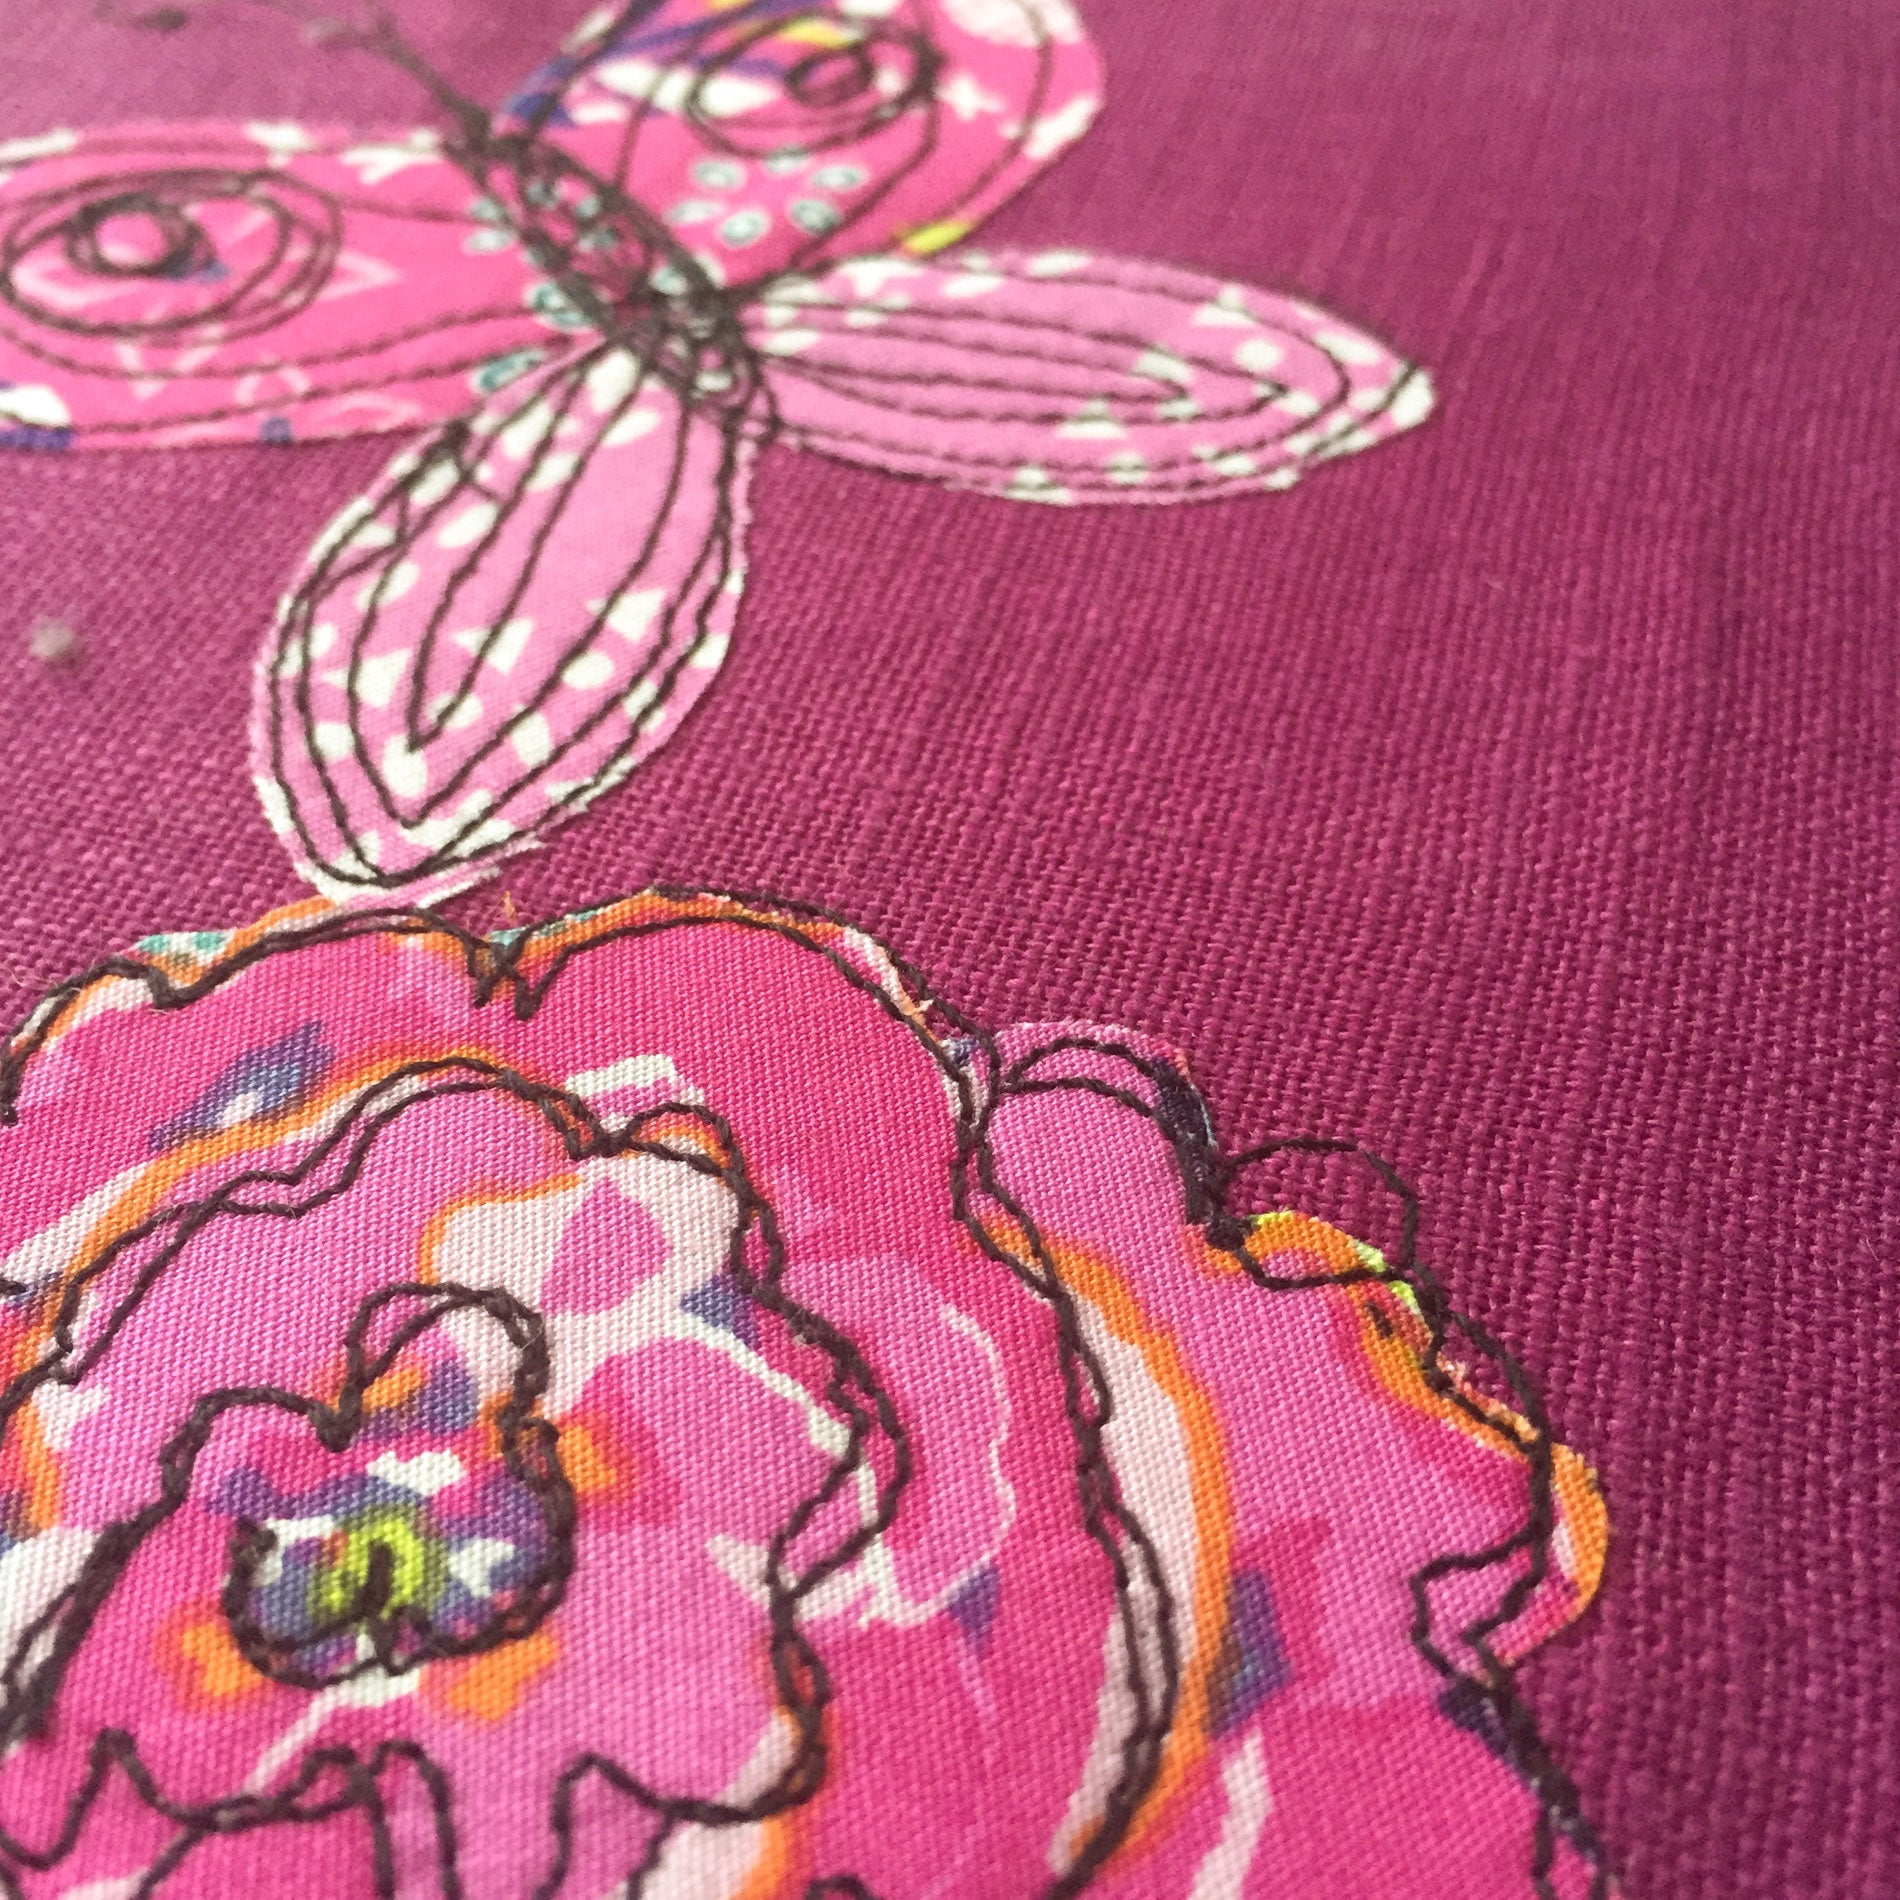 Draw with a Sewing Machine